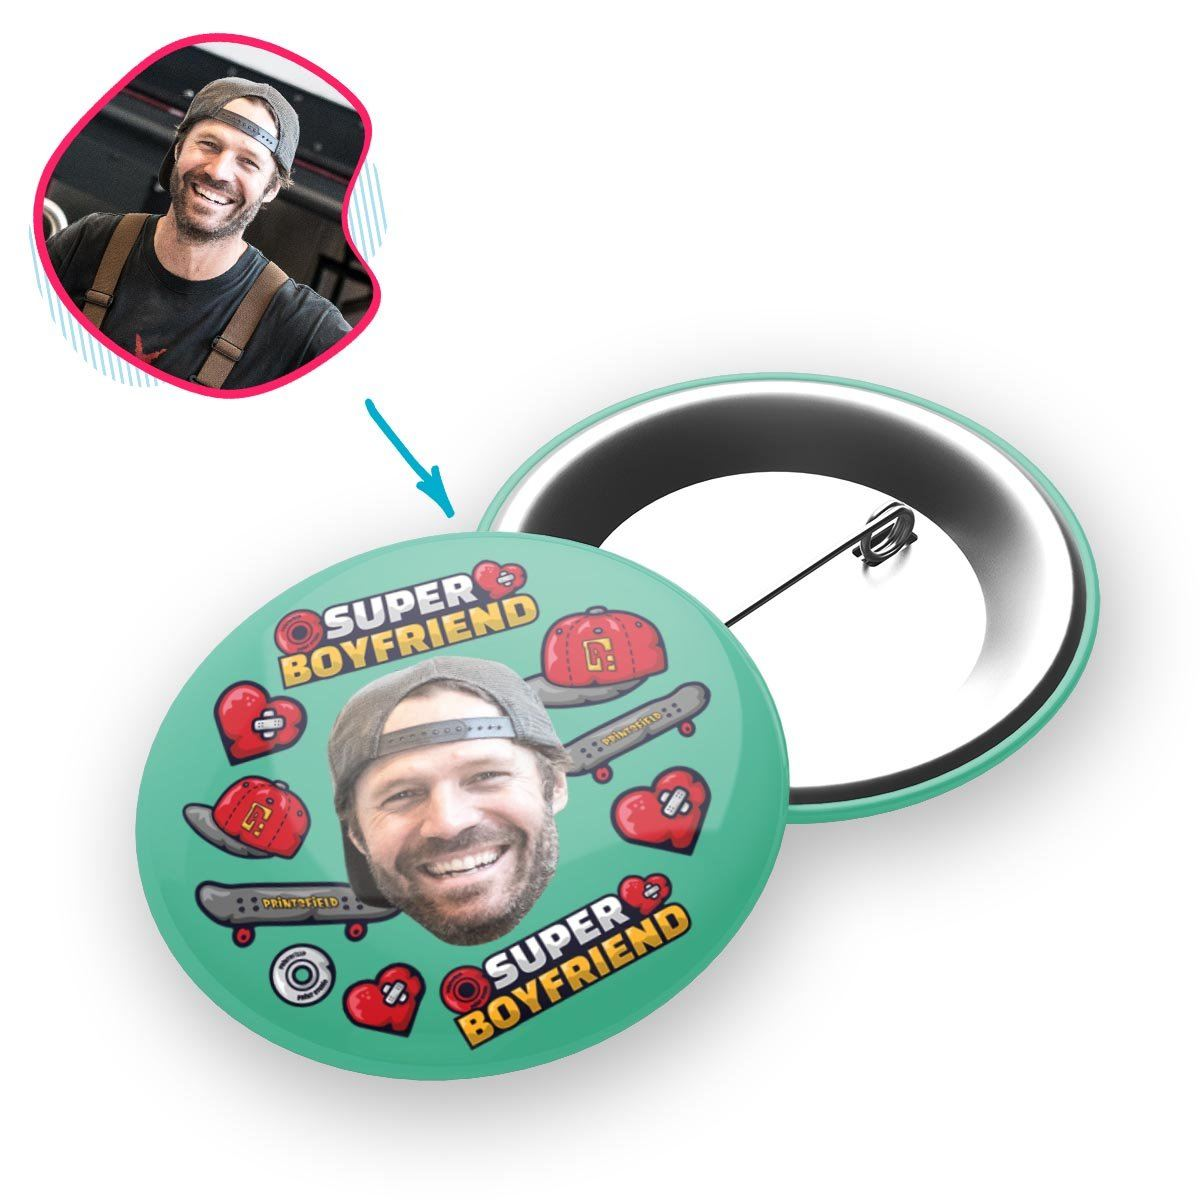 Mint Boyfriend personalized pin with photo of face printed on it